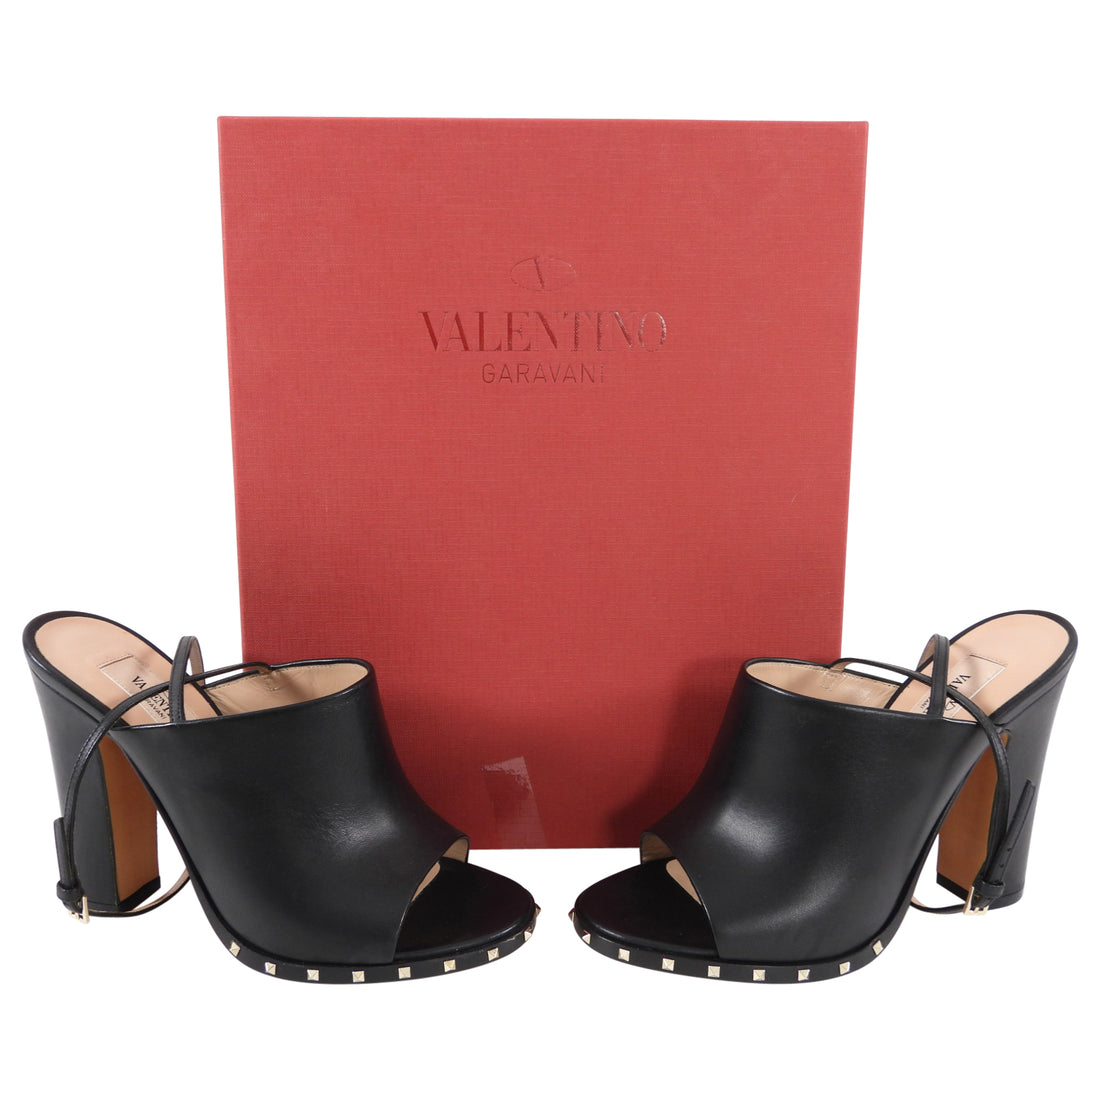 Valentino Rock Stud Black High Heel Mules with Ankle Strap - 6